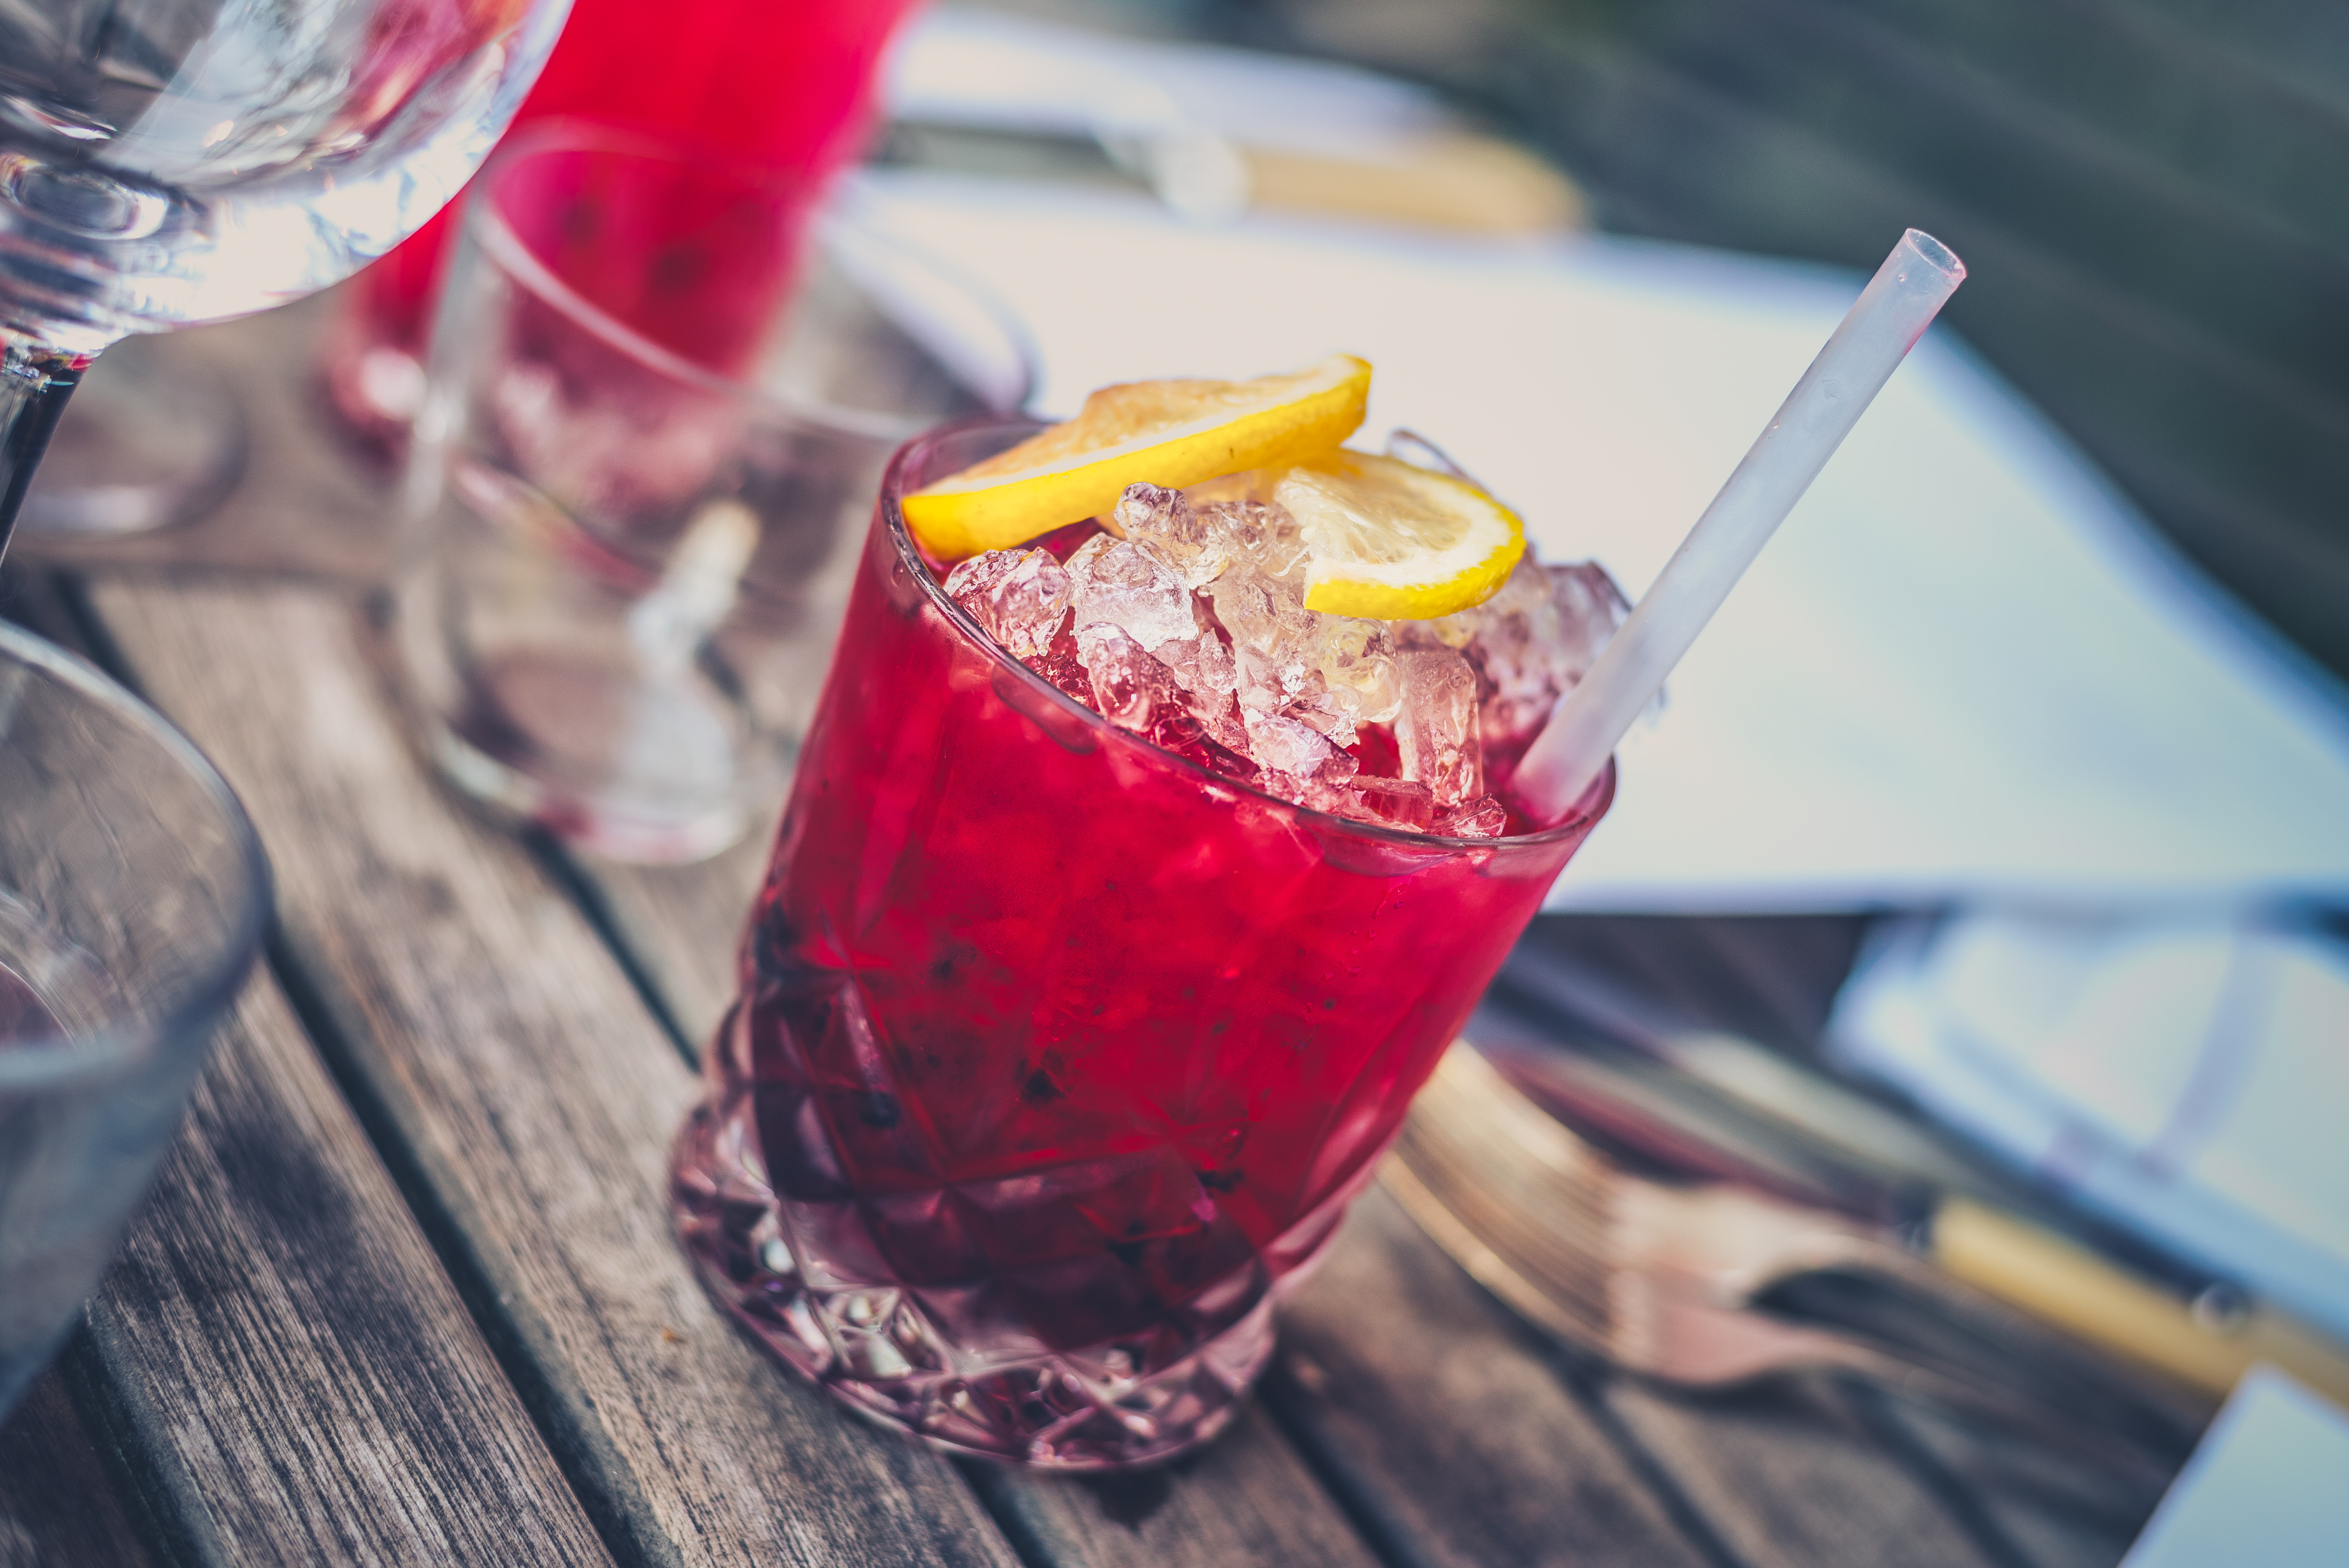 Soaking Up the End of Summer with Sangria